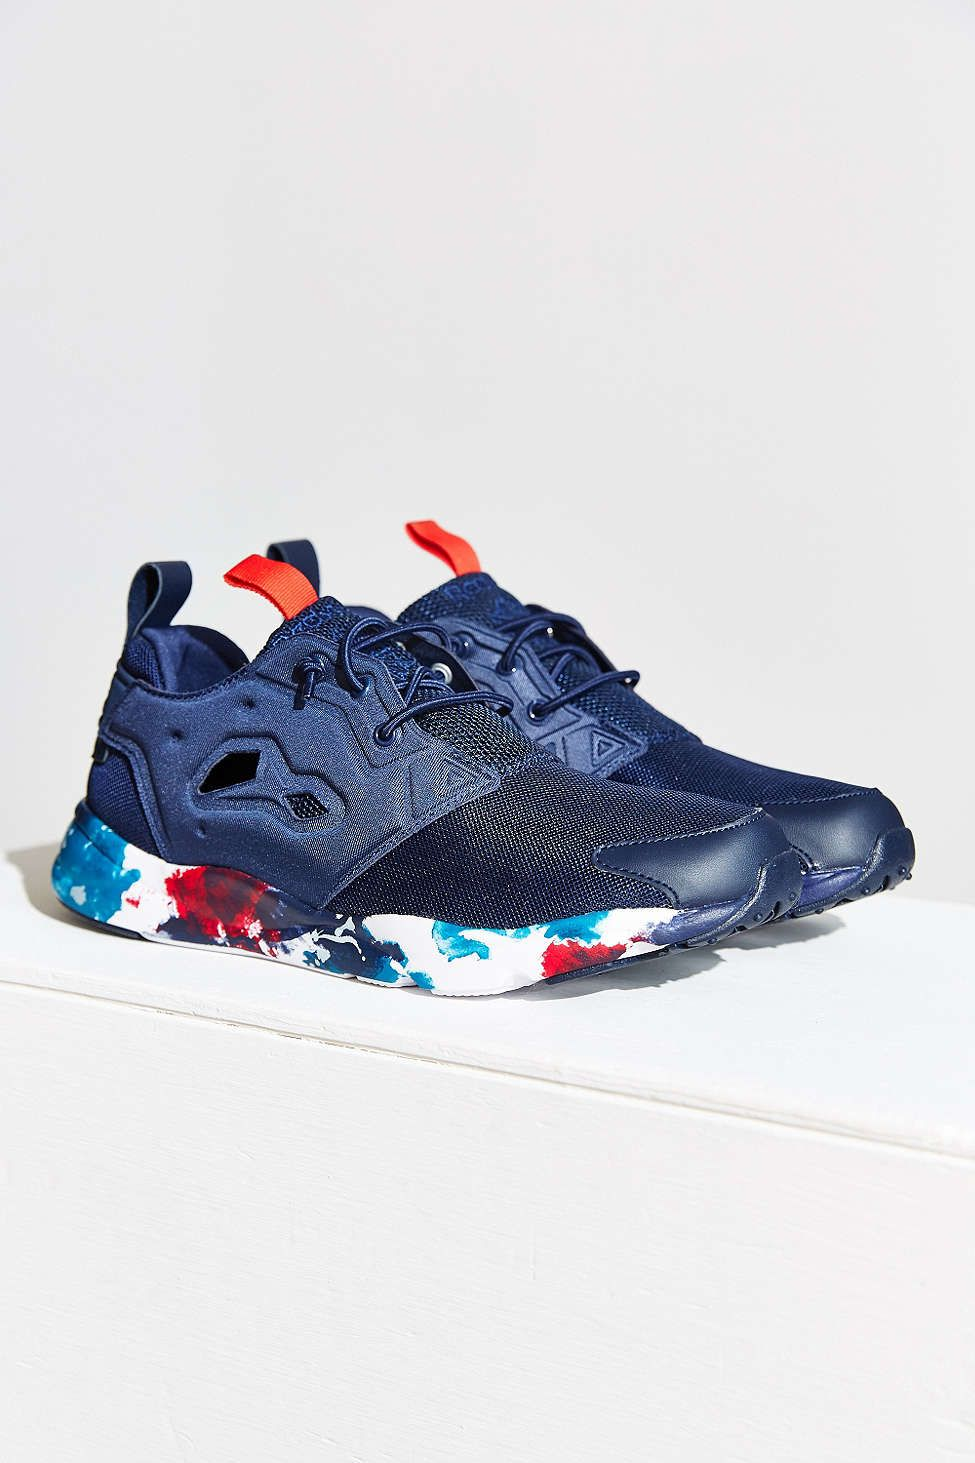 the best attitude 8b9c4 963d0 Reebok FuryLite Painted Sole Running Sneaker - Urban Outfitters